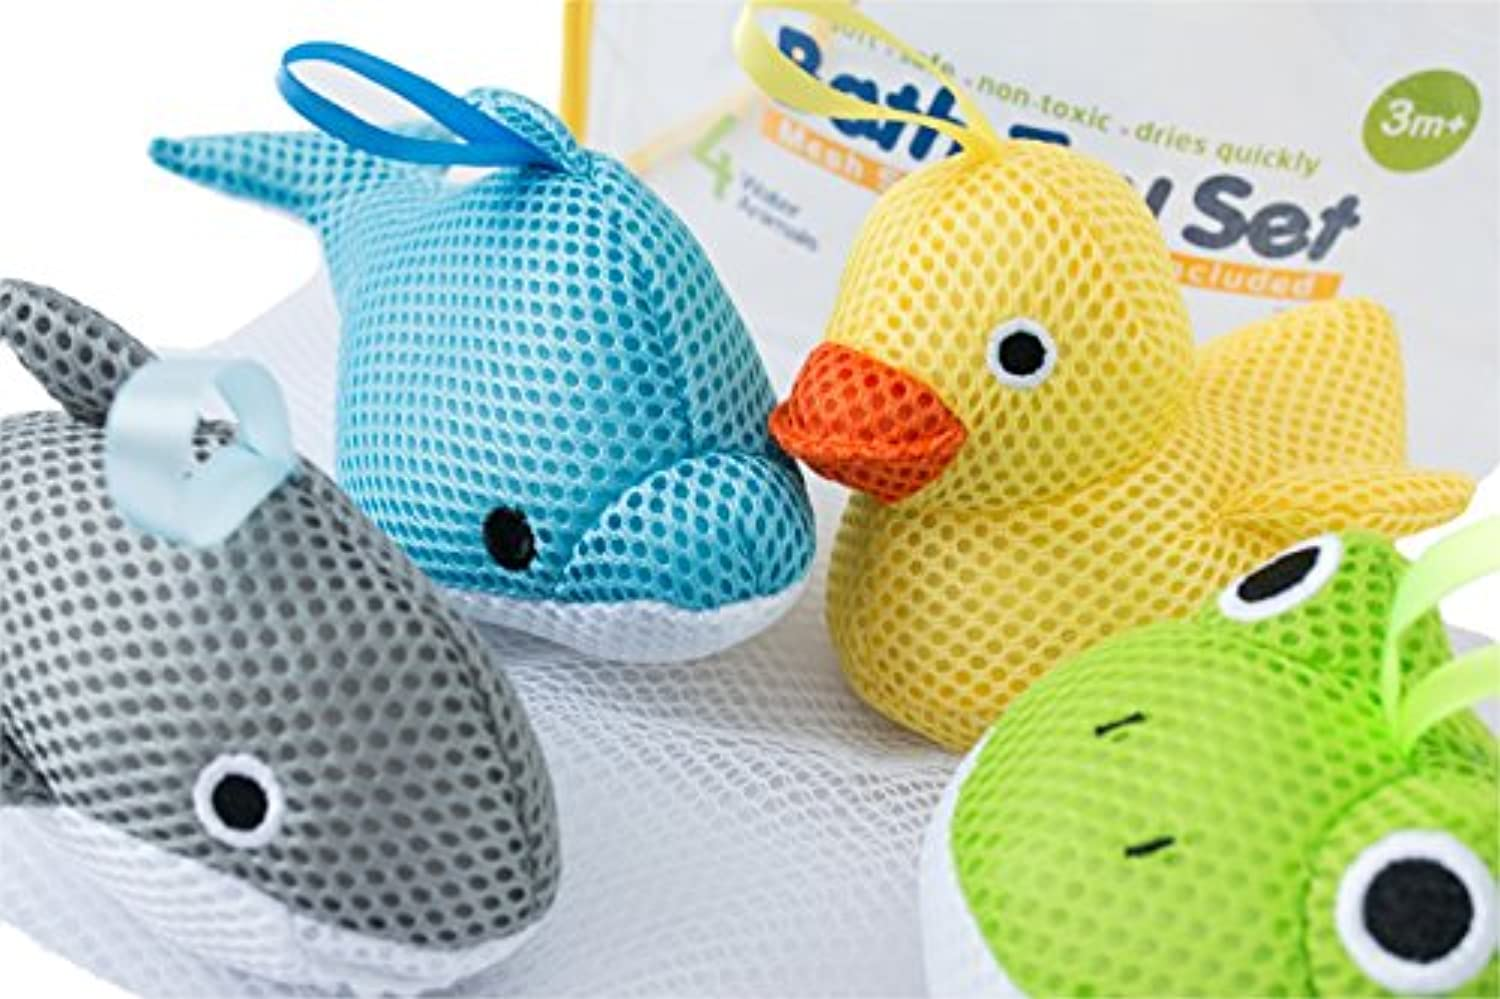 Bath Toys - Soft, Safe & Educational for Baby & Toddlers - Best Set for Kids of All Ages - Interactive Play & Games for Boys and Girls - Use In or Out of Tub - BONUS Case & Mesh Net Organizer Bag for Storage & Drying - Easy to Clean, Without Holes - NO Mold - Satisfaction Guaranteed! by Simple Lines Company